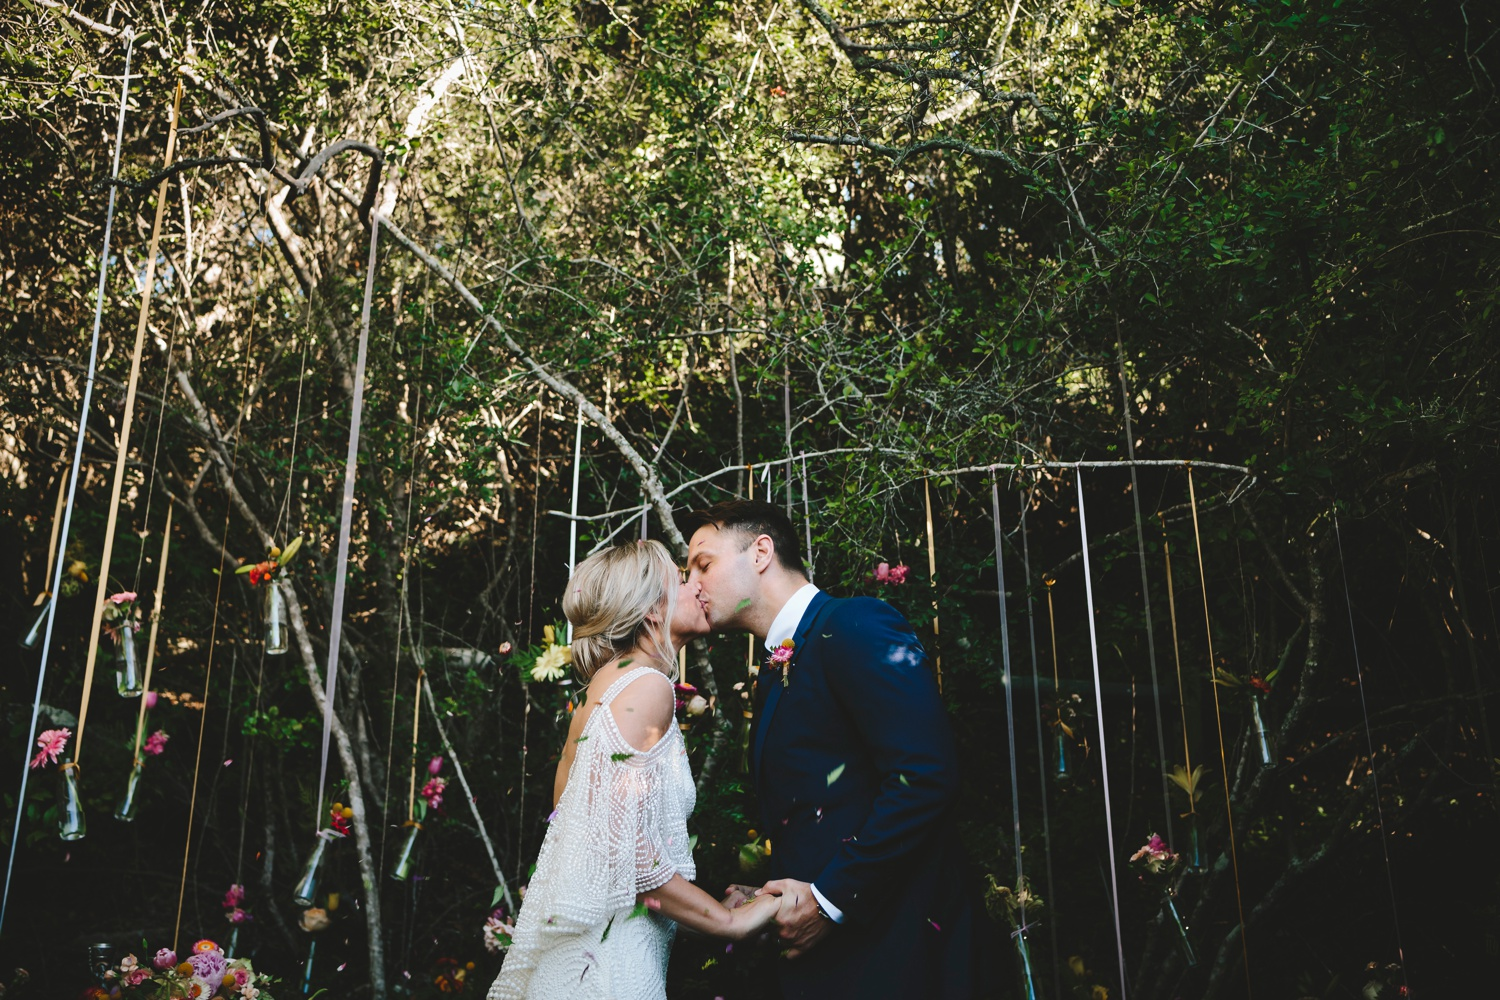 charlie_ray_photography_runaway_romance_elopement_emily_moon_plett_simple_boho_wedding_south_africa_bohemium_0068.jpg